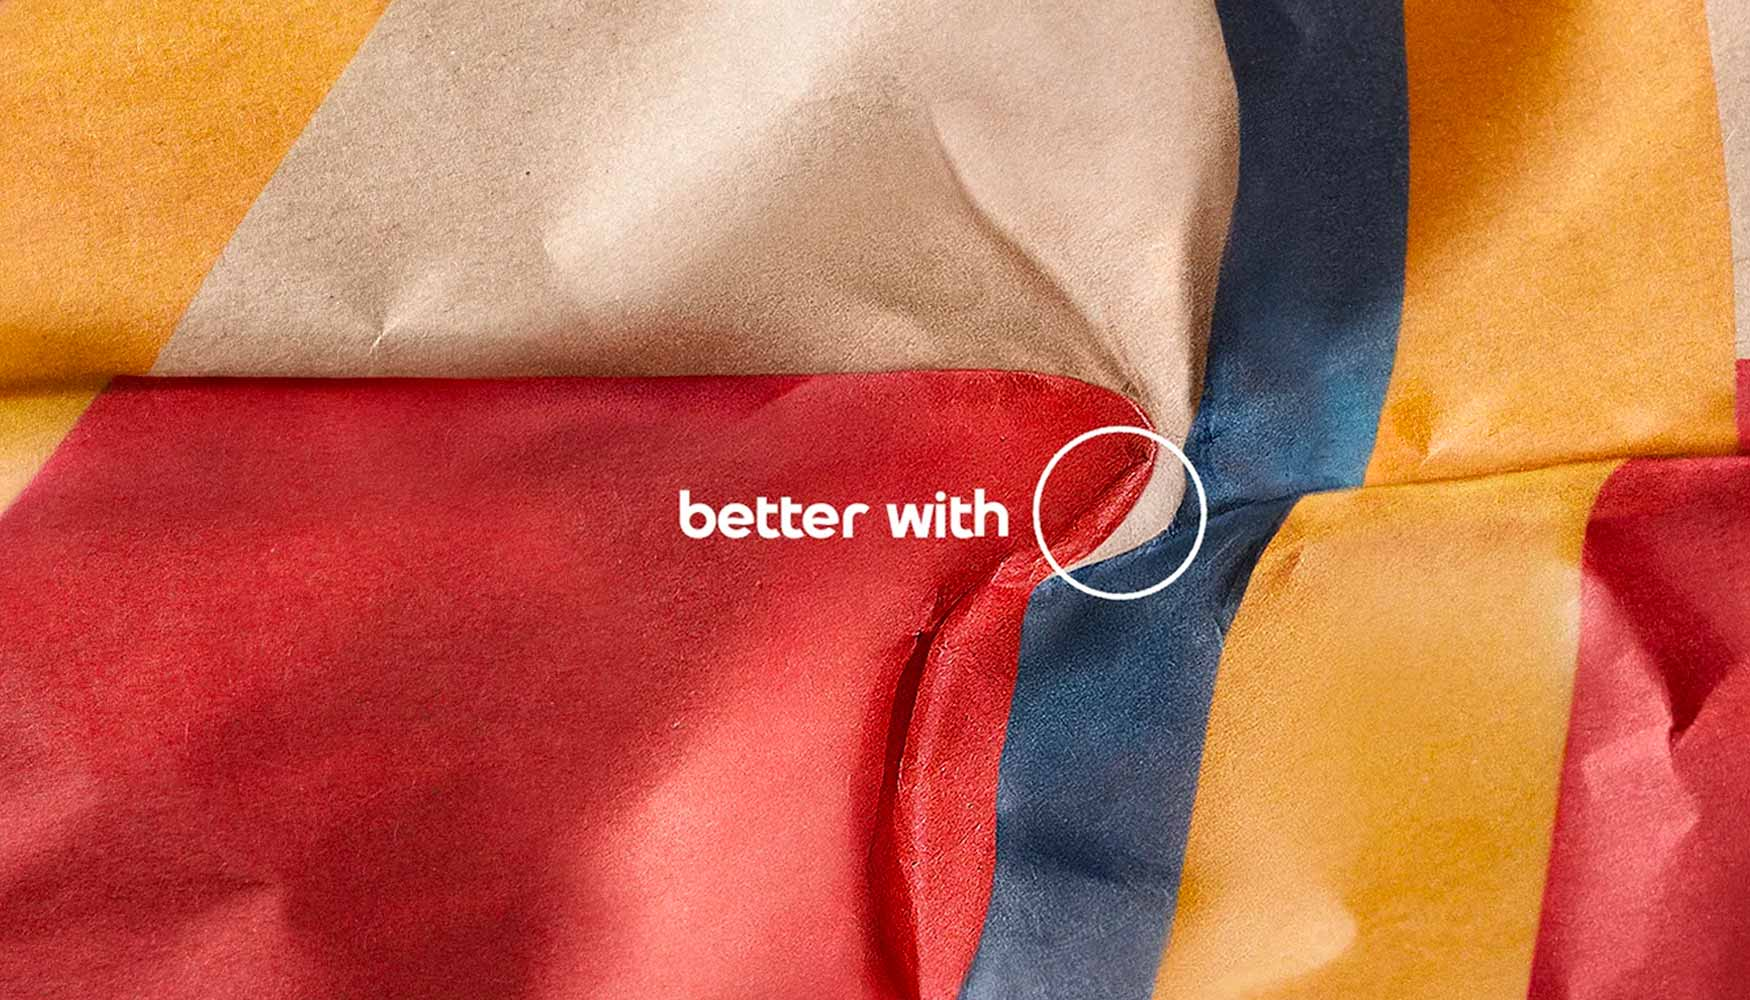 Close image of a fast food chains brown paper wrapper from the better with Pepsi campaign